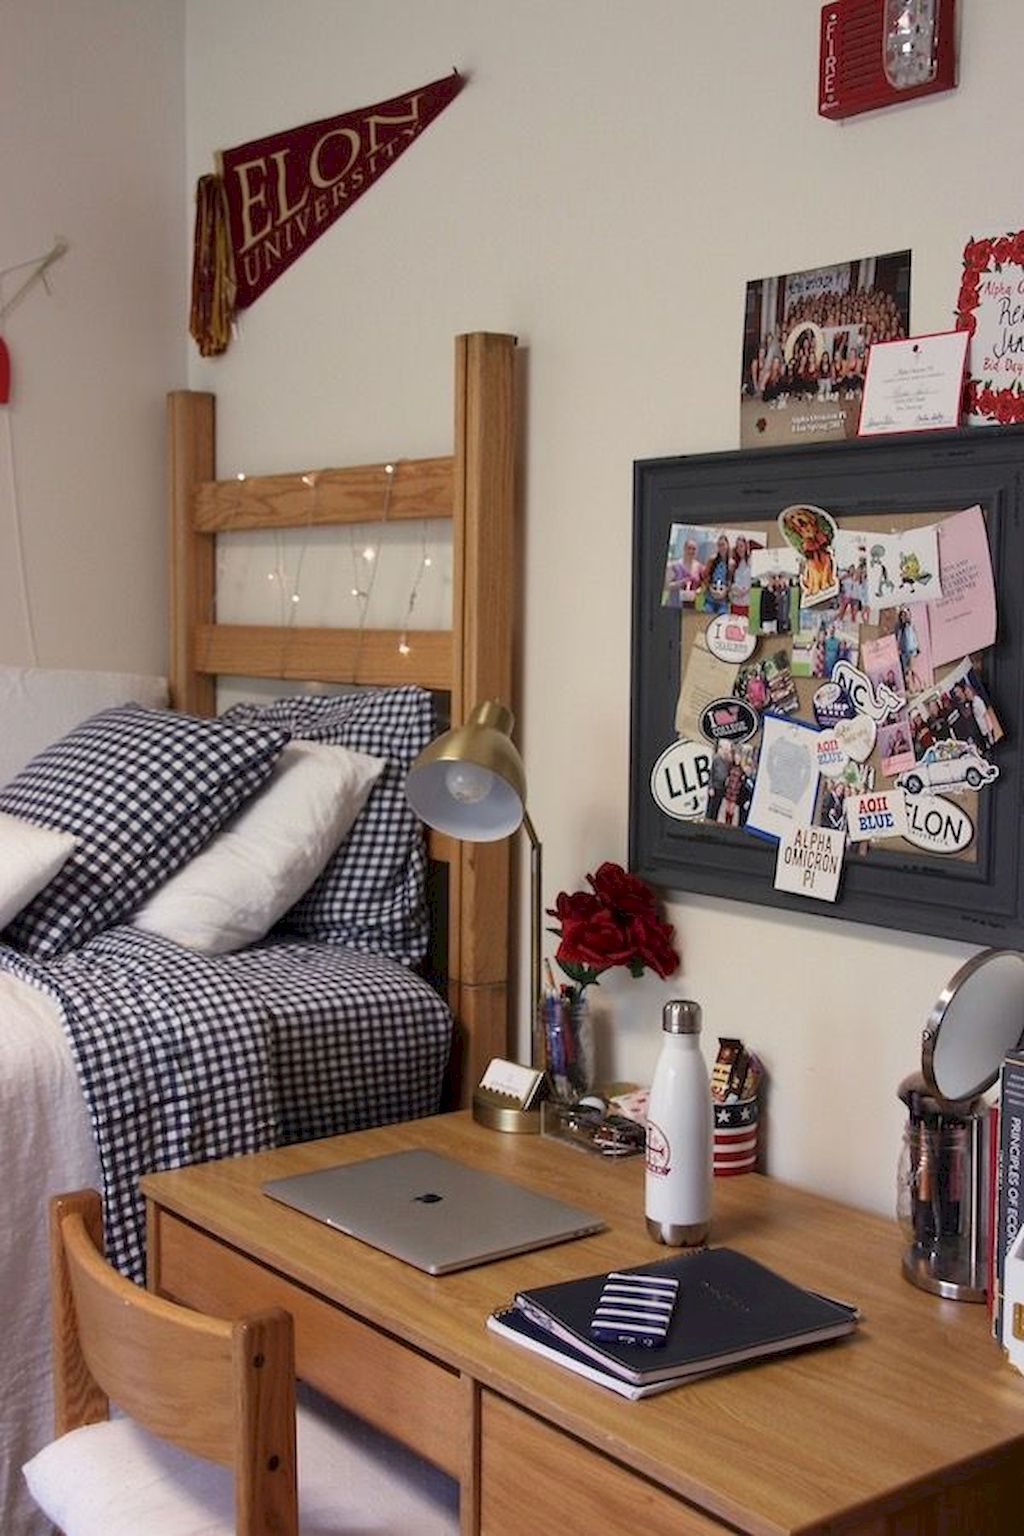 Awesome 65 College Apartment Decorating Ideas On A Budget Source